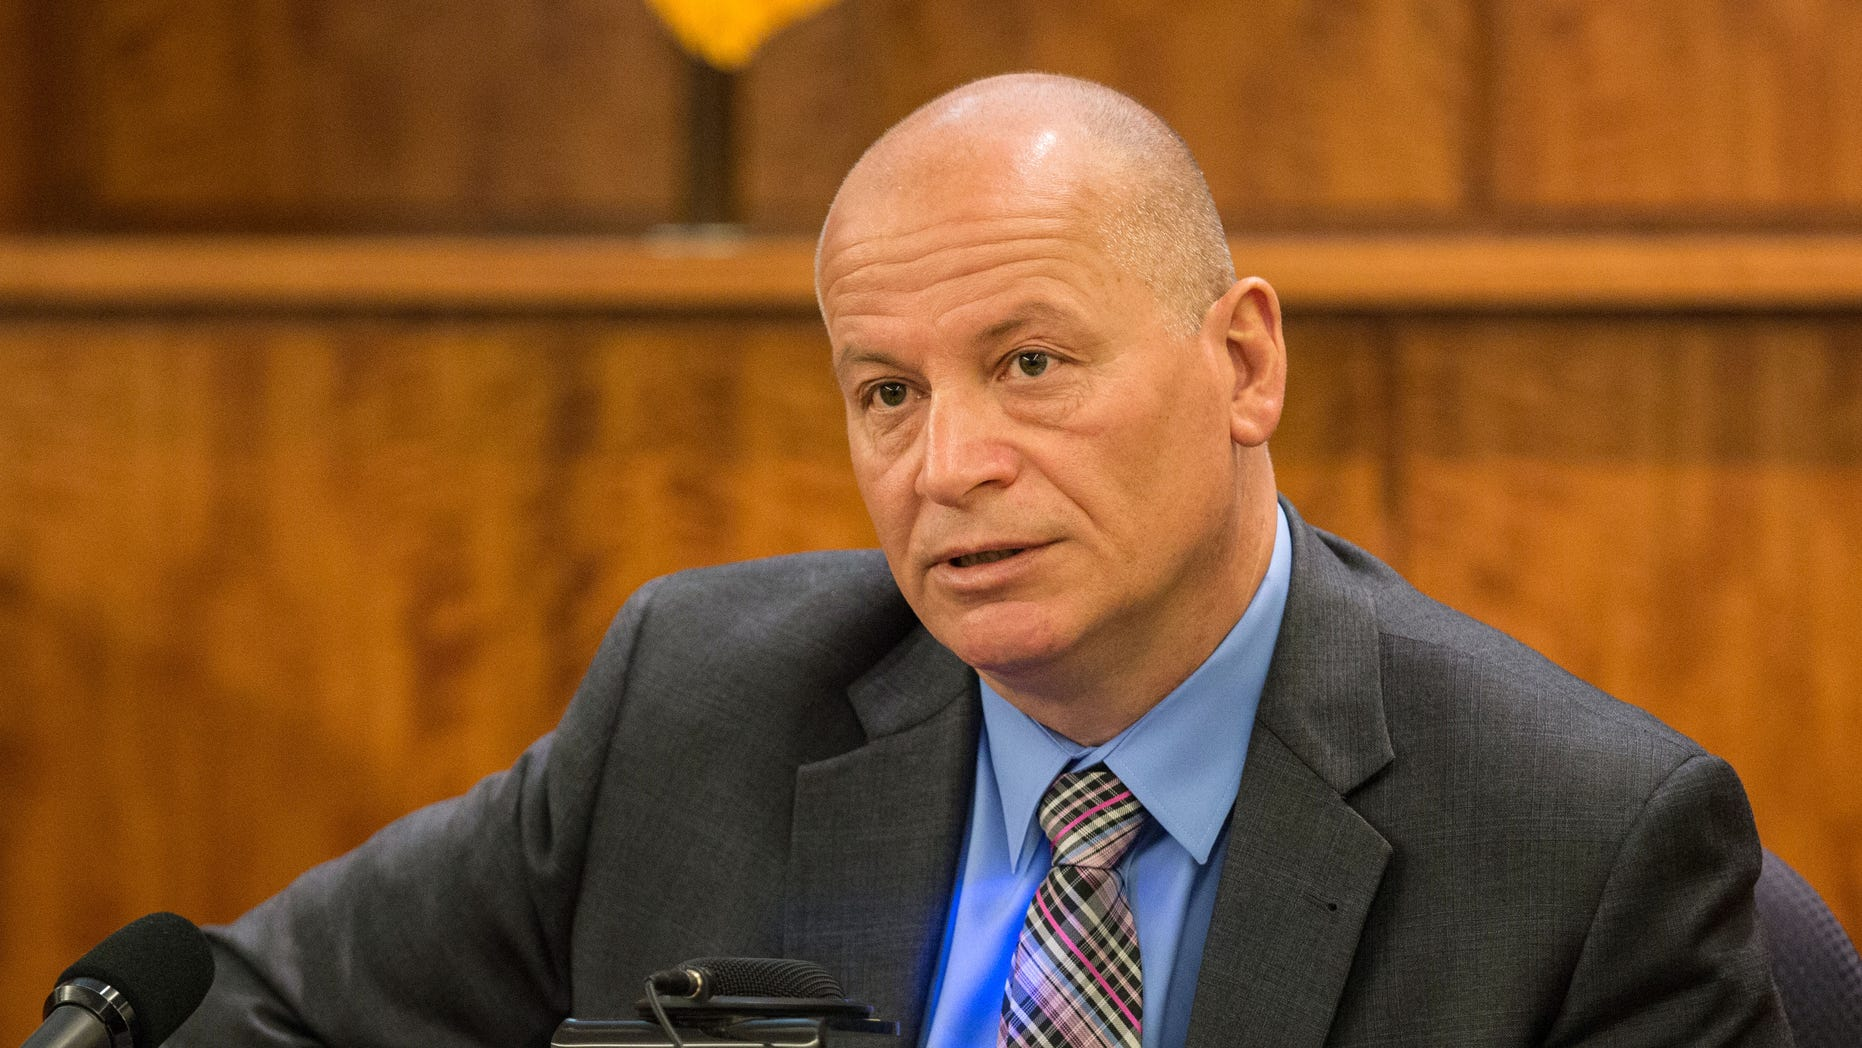 Mark Briggs, New England Patriots' director of security,  testifies during former New England Patriots football player Aaron Hernandez's murder trial, Tuesday, March 31, 2015, at Bristol County Superior Court in Fall River, Mass. Hernandez is accused of killing Odin Lloyd in June 2013.  (AP Photo/The Boston Globe, Aram Boghosian, Pool)